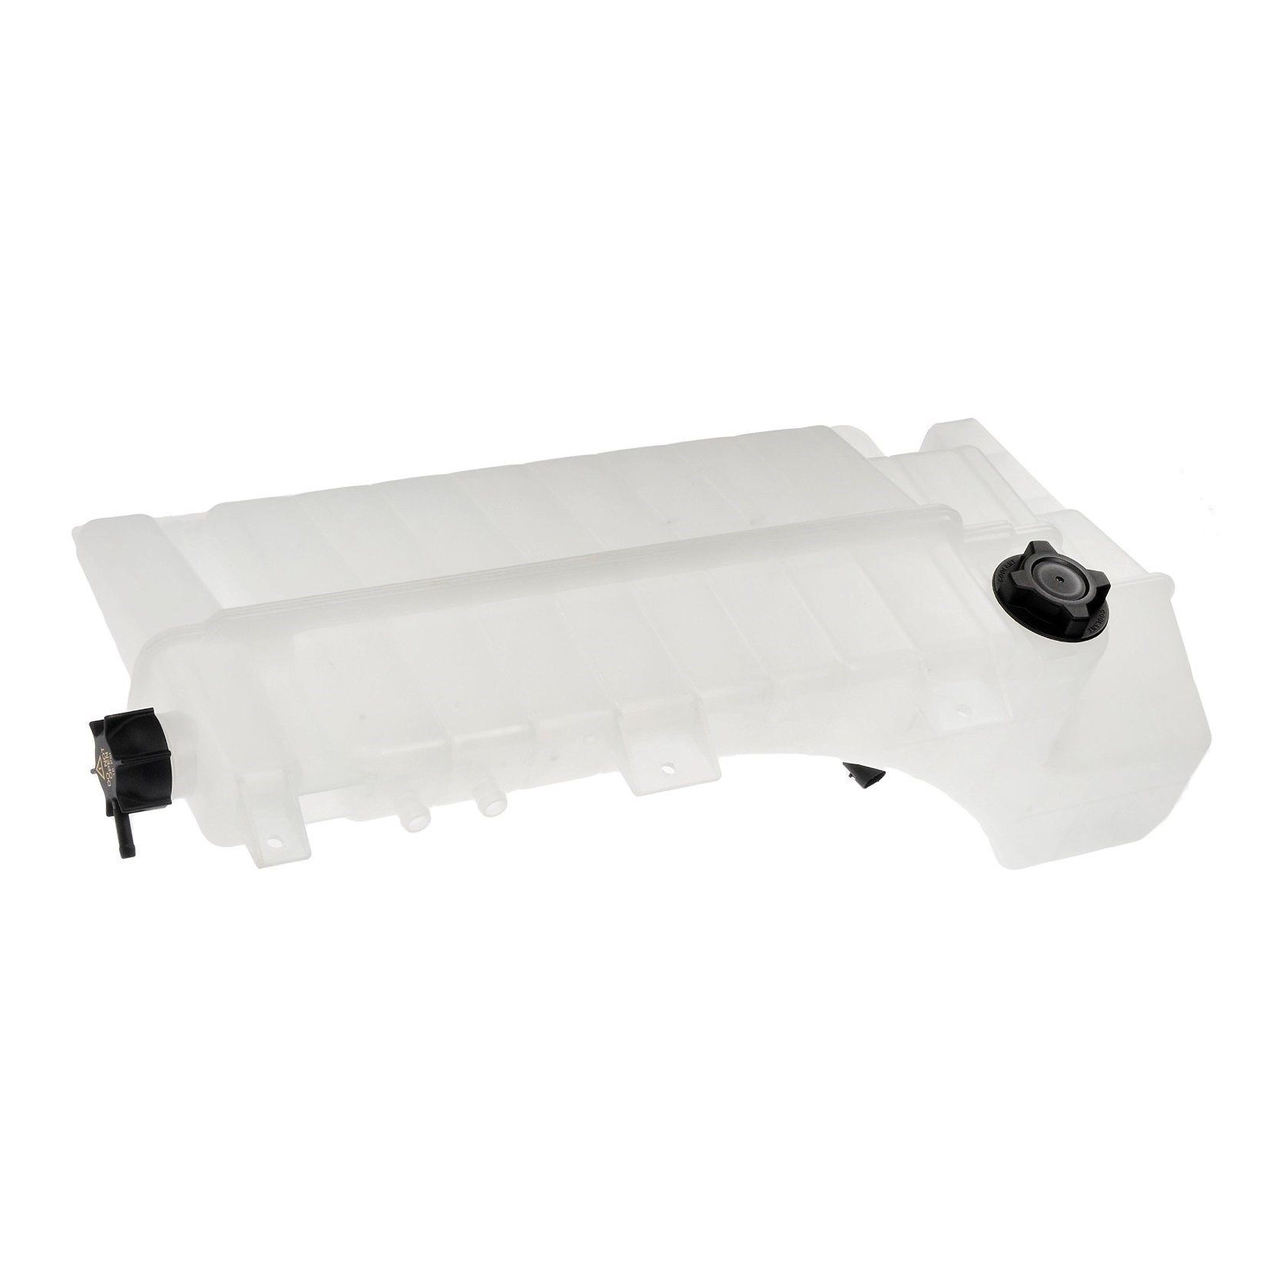 Volvo Coolant Tank Assembly 21846997